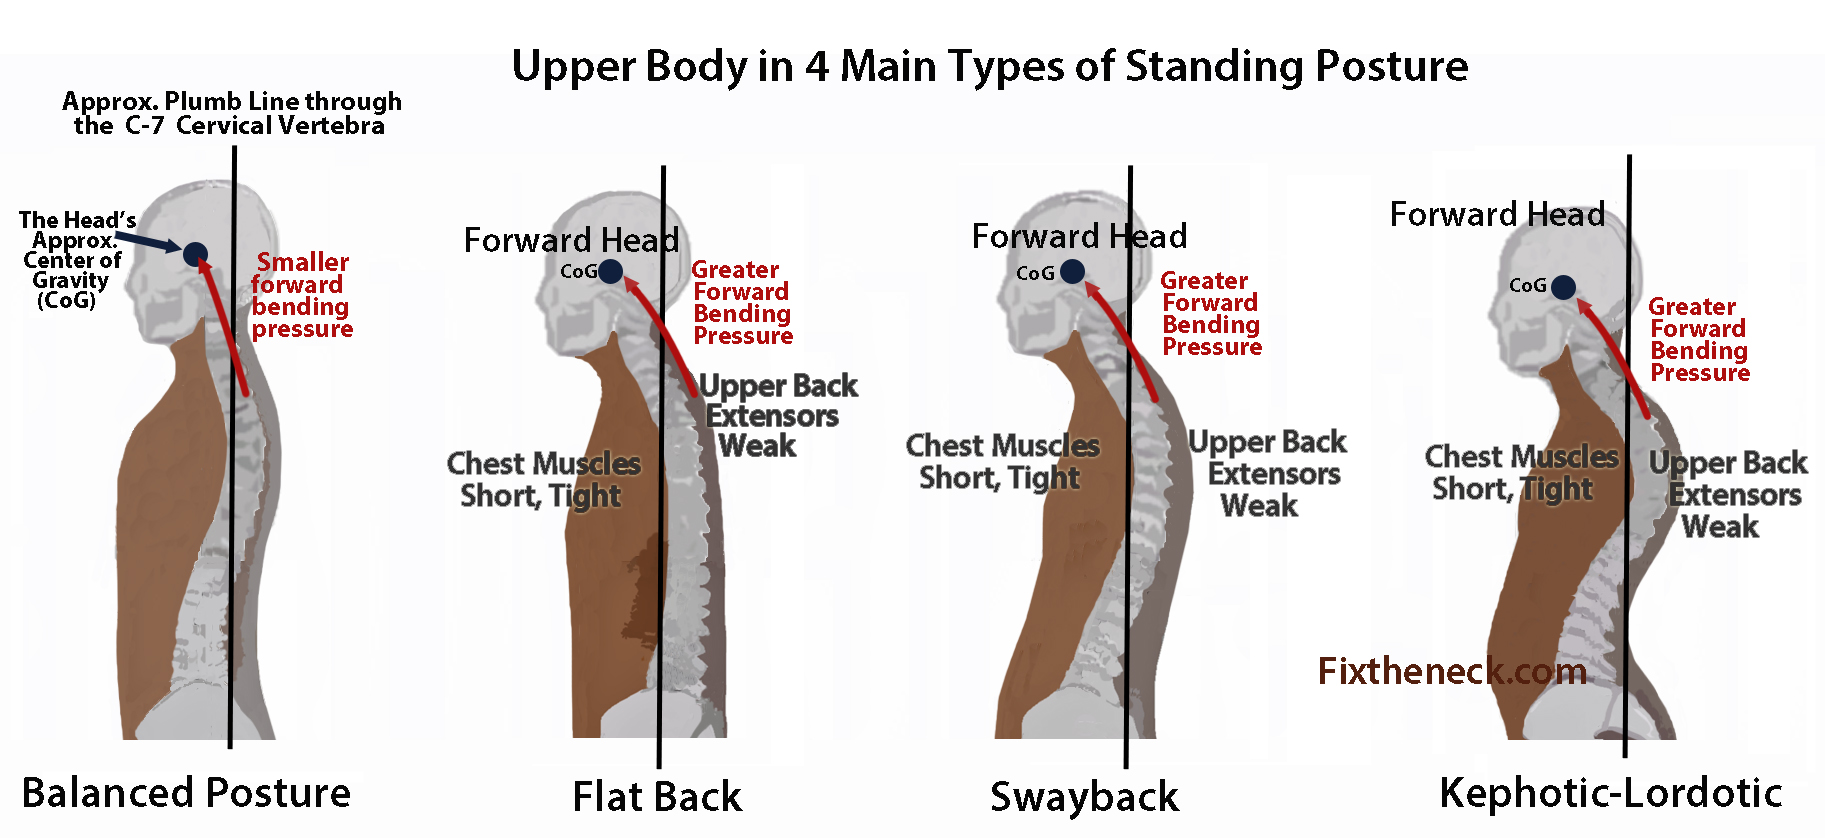 best office chairs for lower back pain chair covers classroom poor posture treatment - snyder chiropractic & wellness